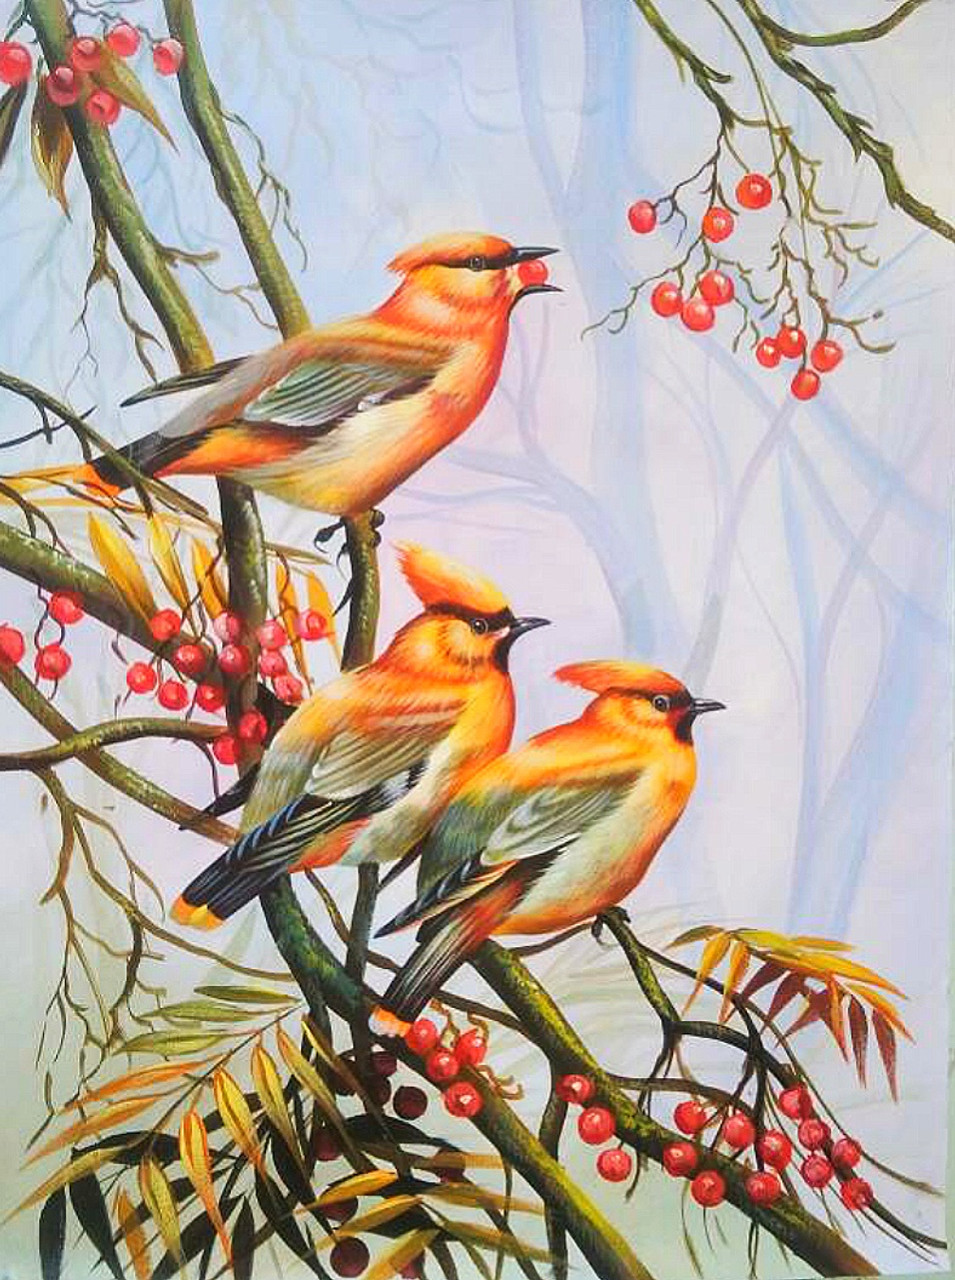 Birds painting (ART_6706_39507) - Handpainted Art Painting - 24in X 36in